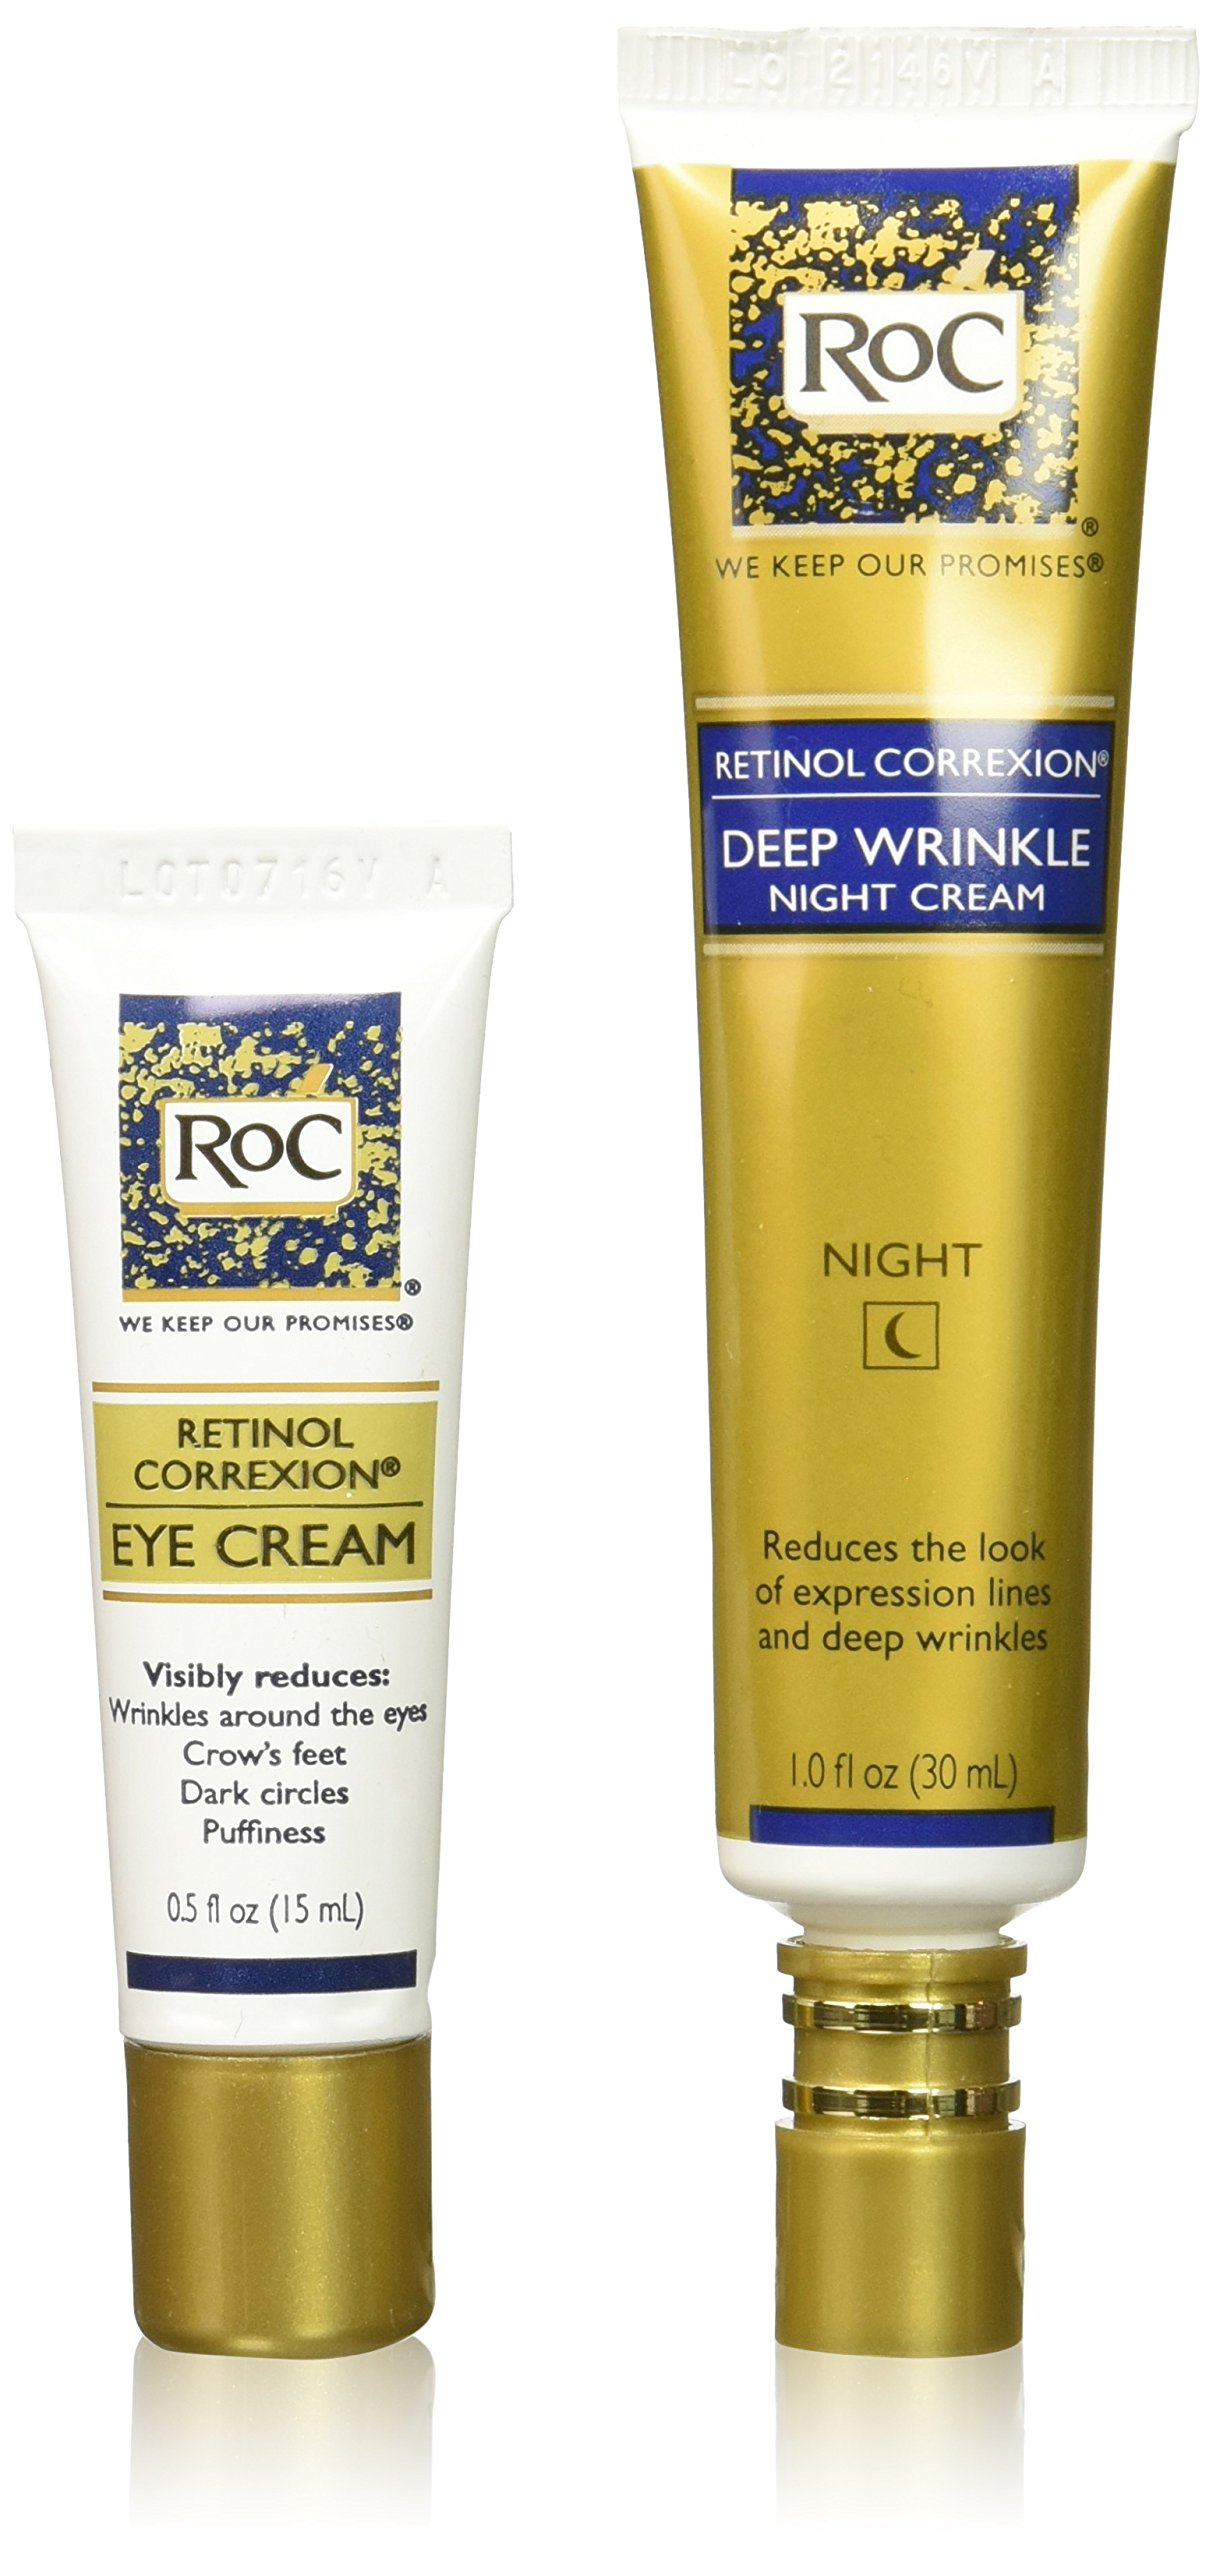 RoC Retinol Correxion Deep Wrinkle Repair Pack by RoC